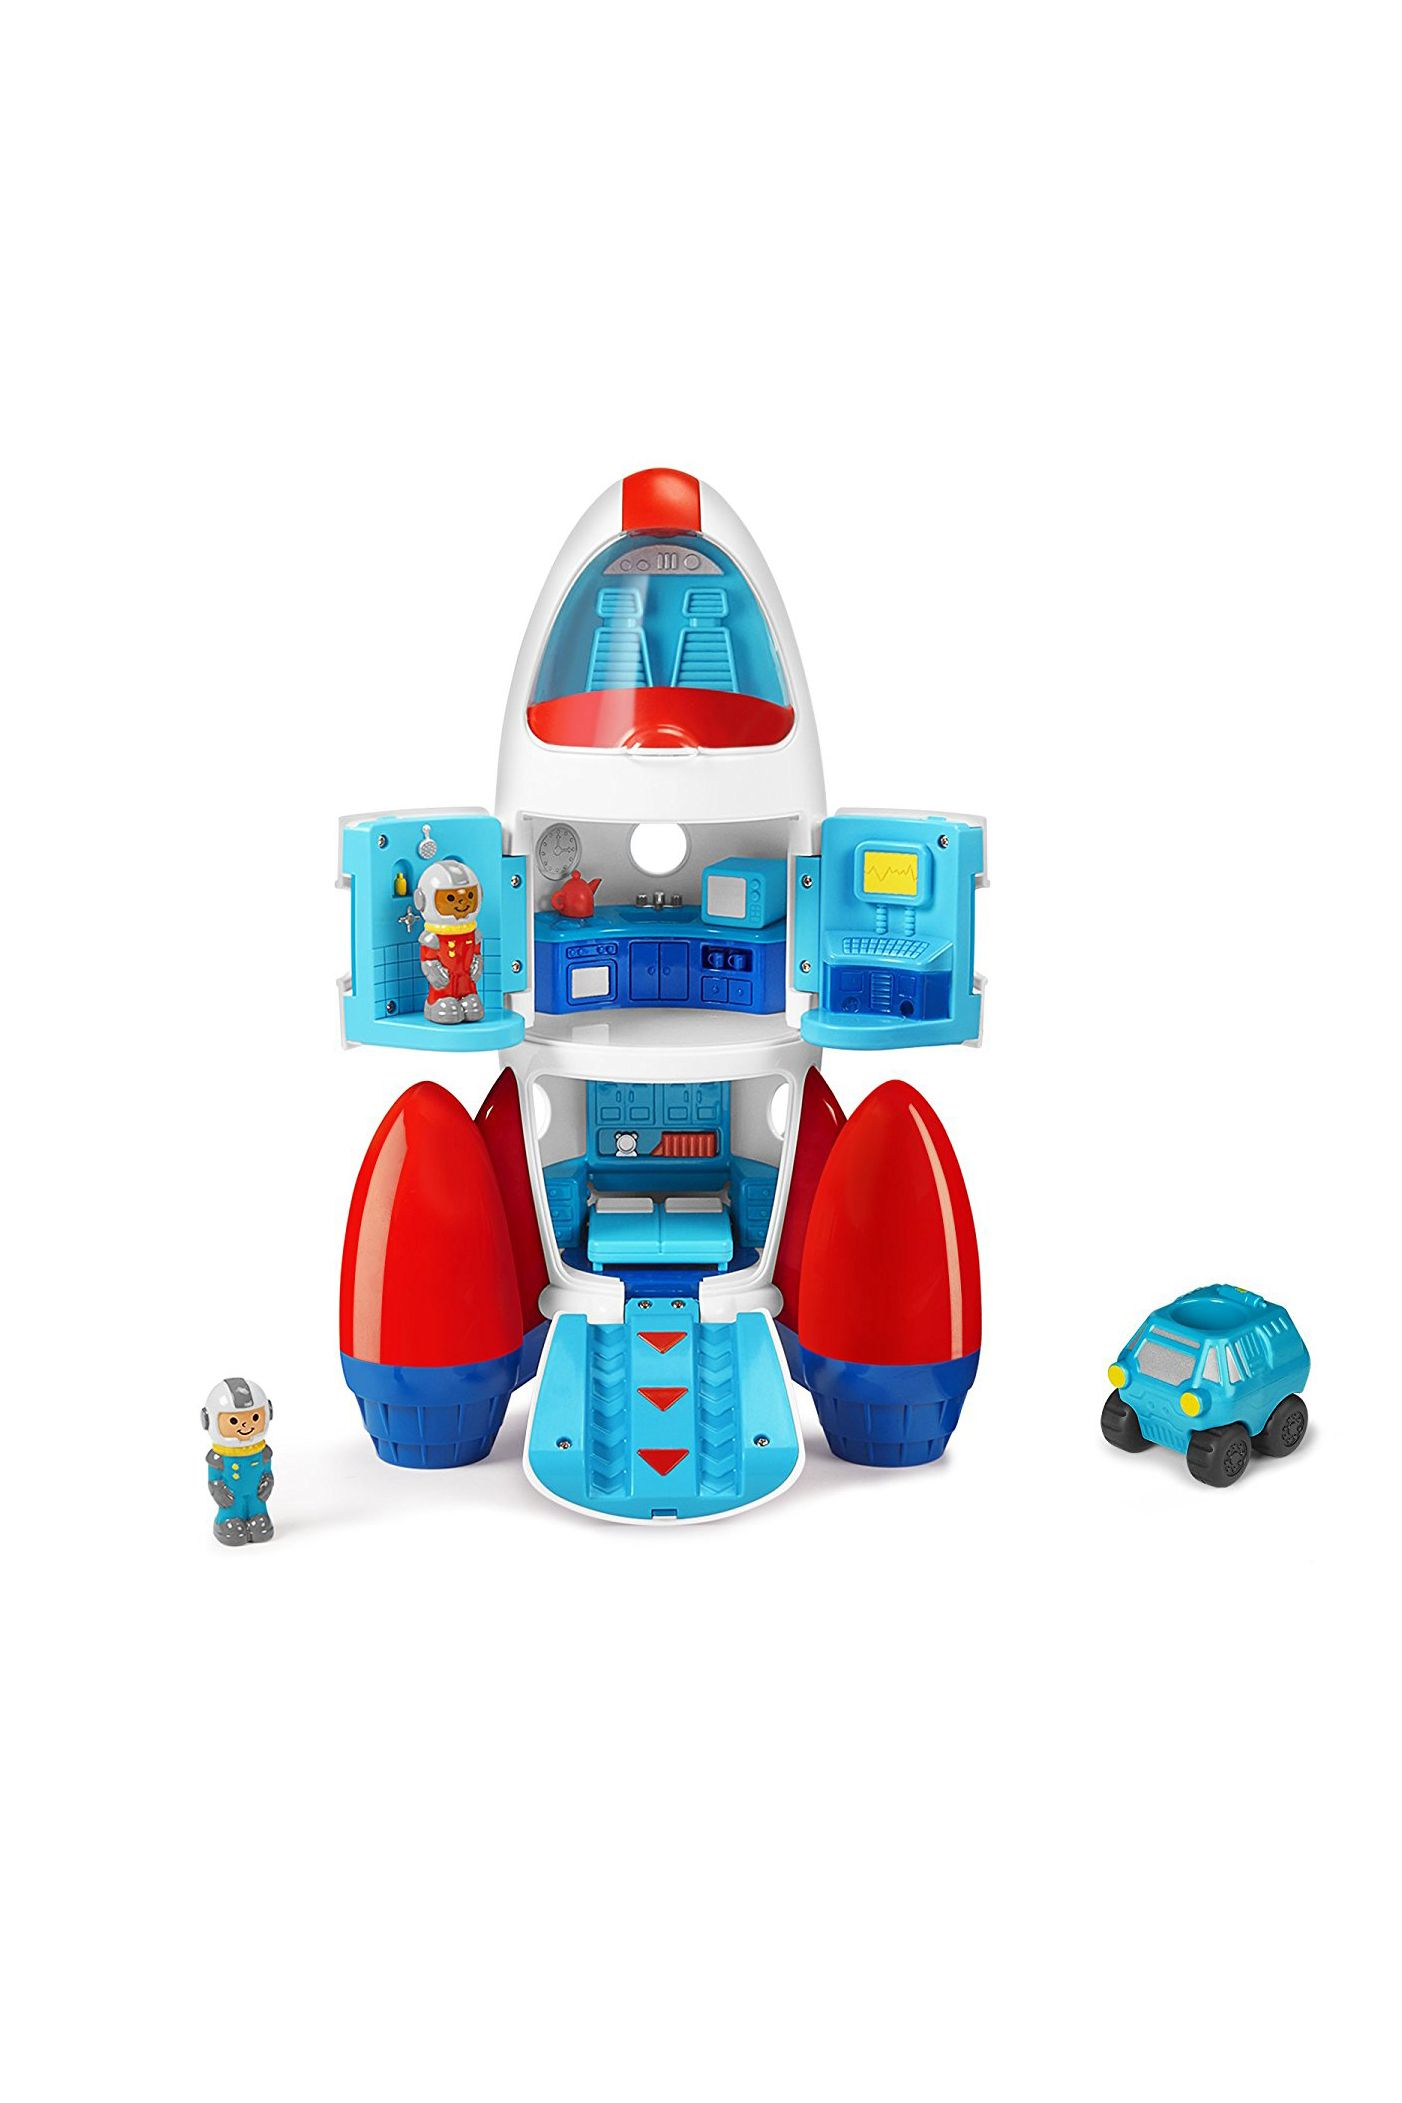 40 Best Kids Toys 2018 - Top Cool Toys for Boys and Girls